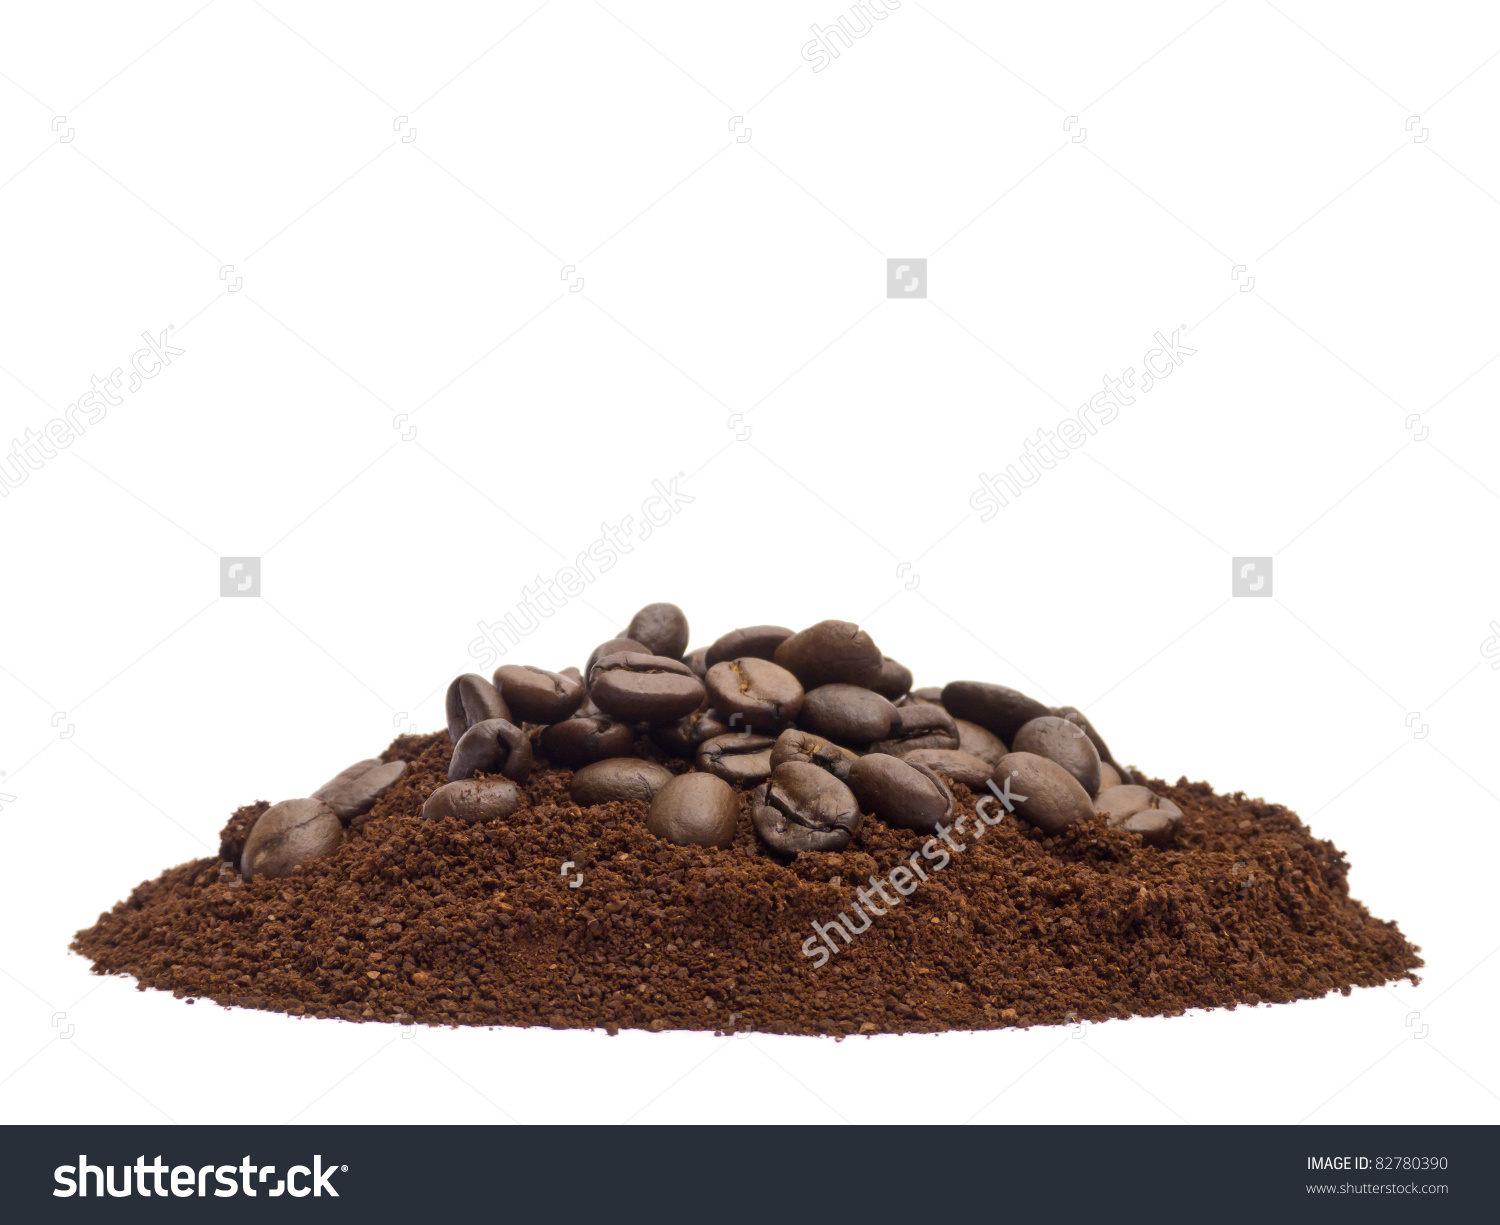 Coffee Powder Beans Isolated On White Stock Photo 82780390.